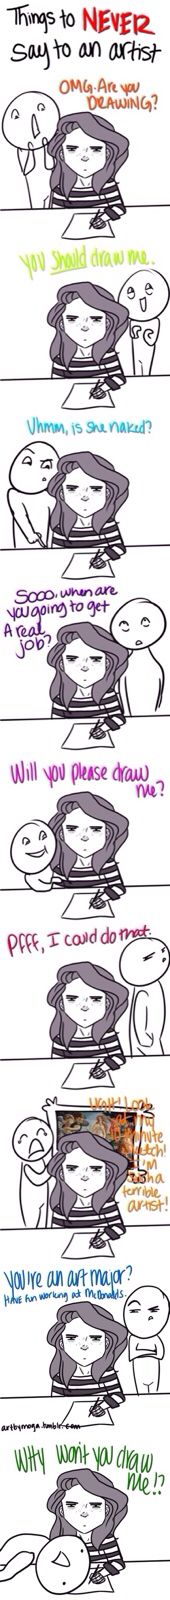 Things to never say to an artist. Literally most of my second period asks me to draw them    -_-